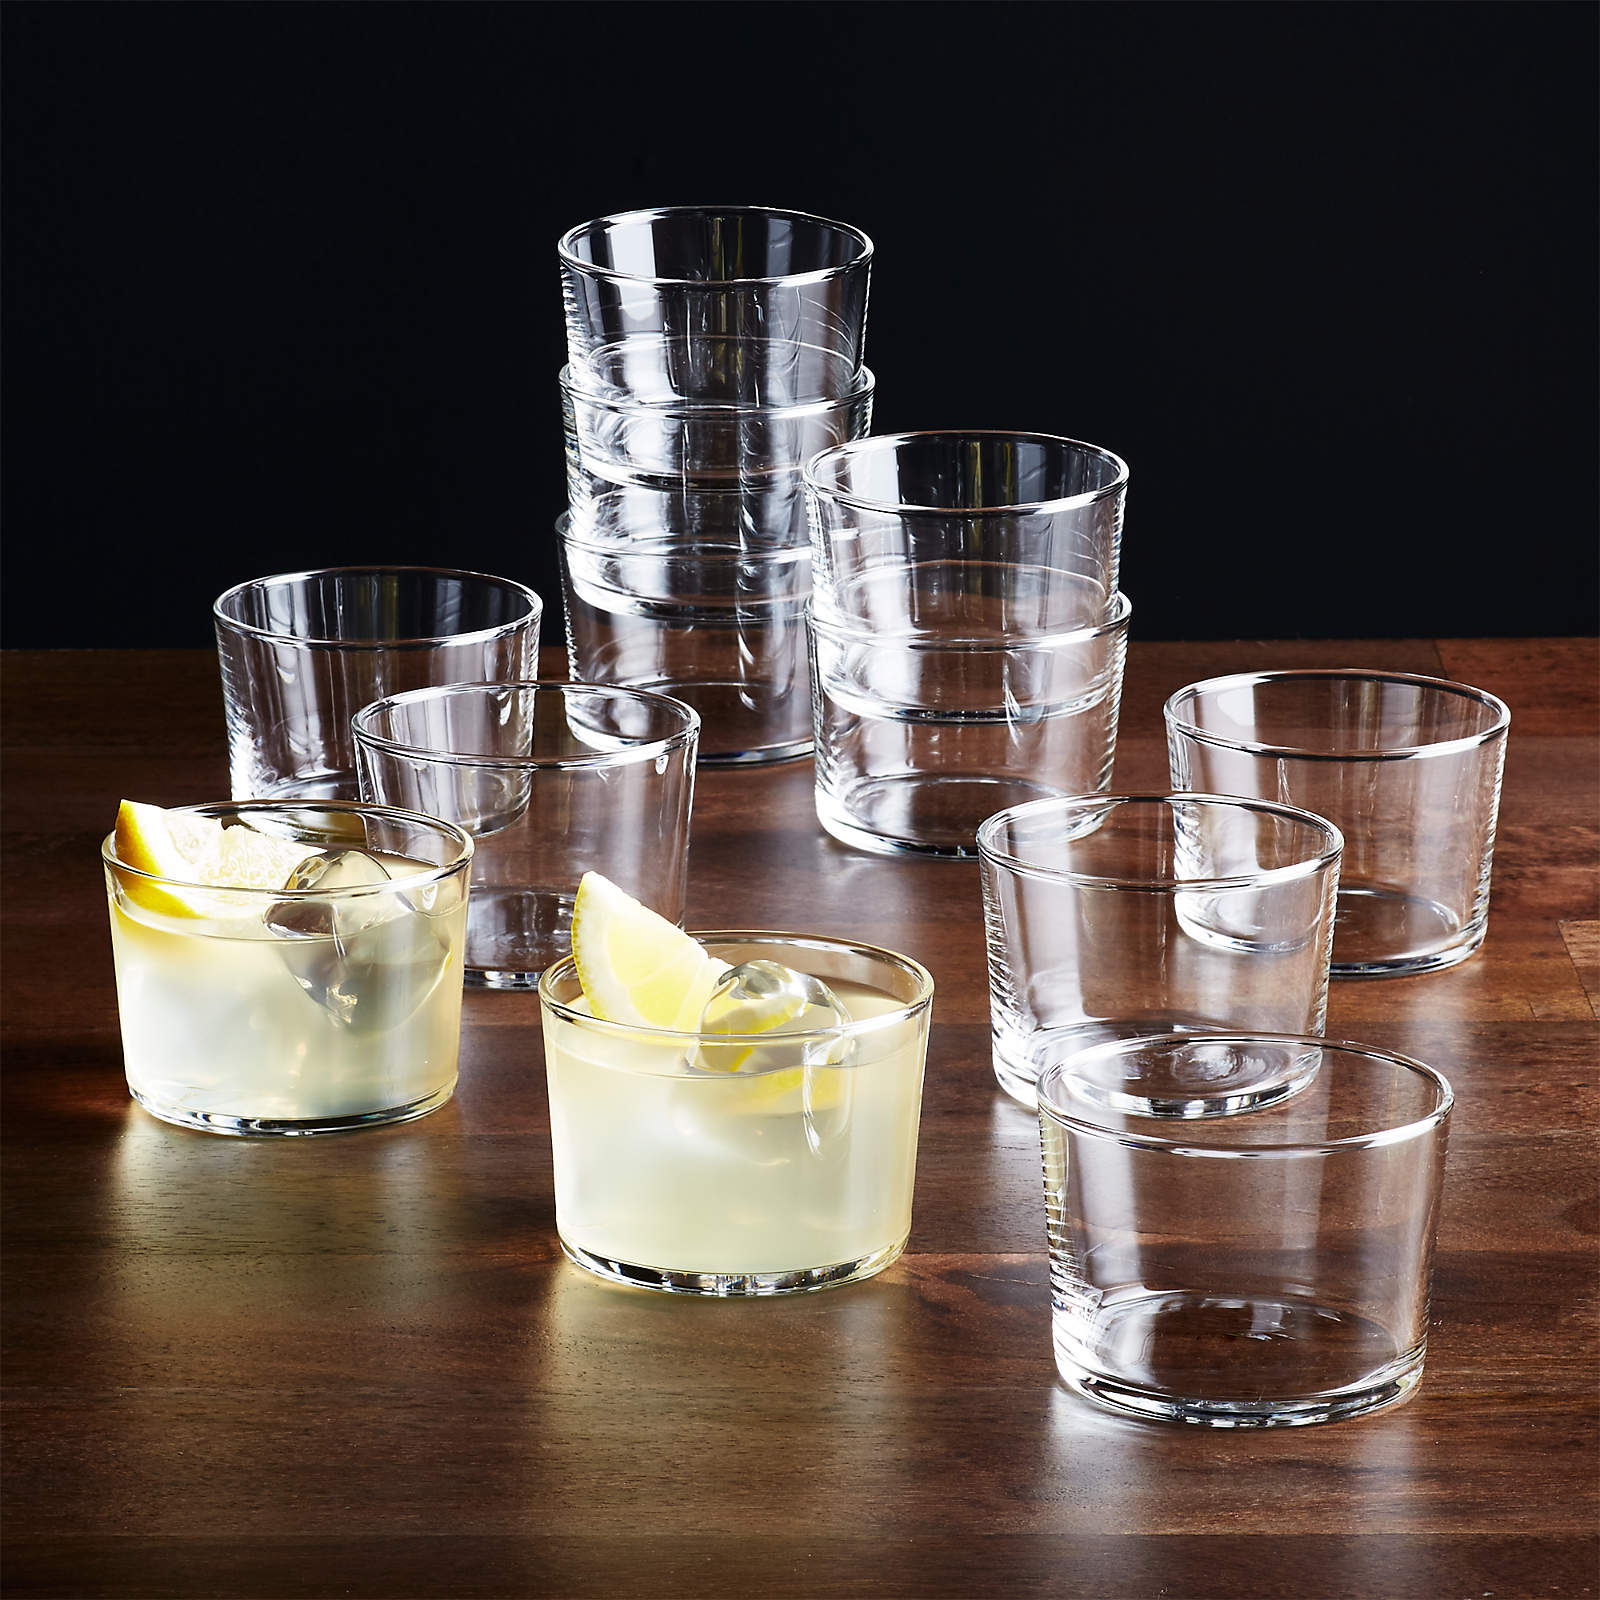 set of 12 7 ounce Bodega glasses